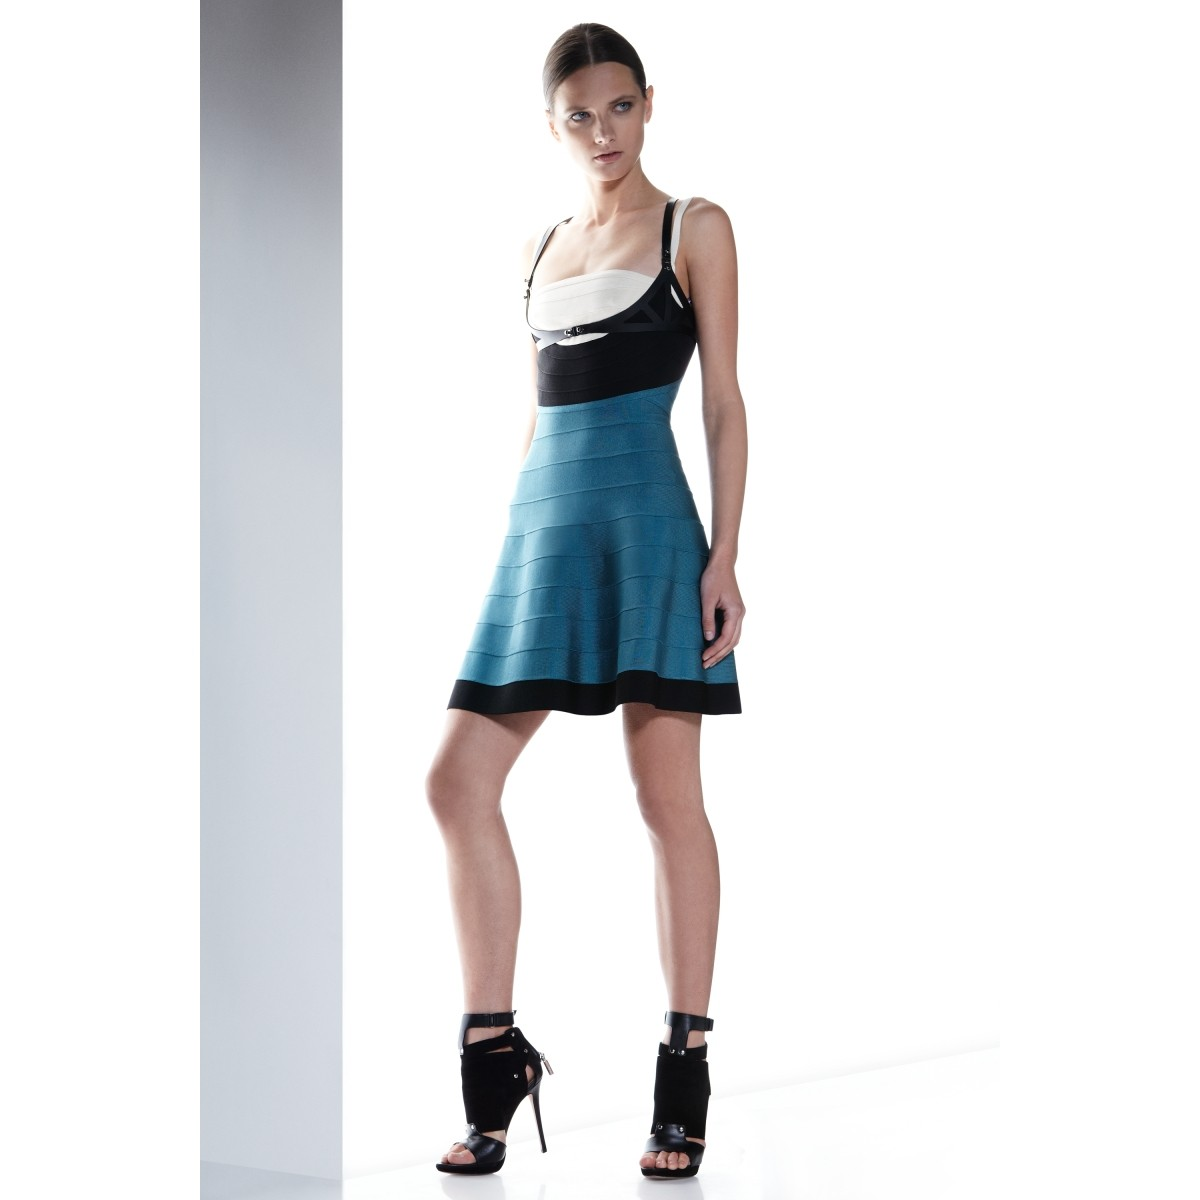 Herve Leger Britt Blue Colorblocked Dress